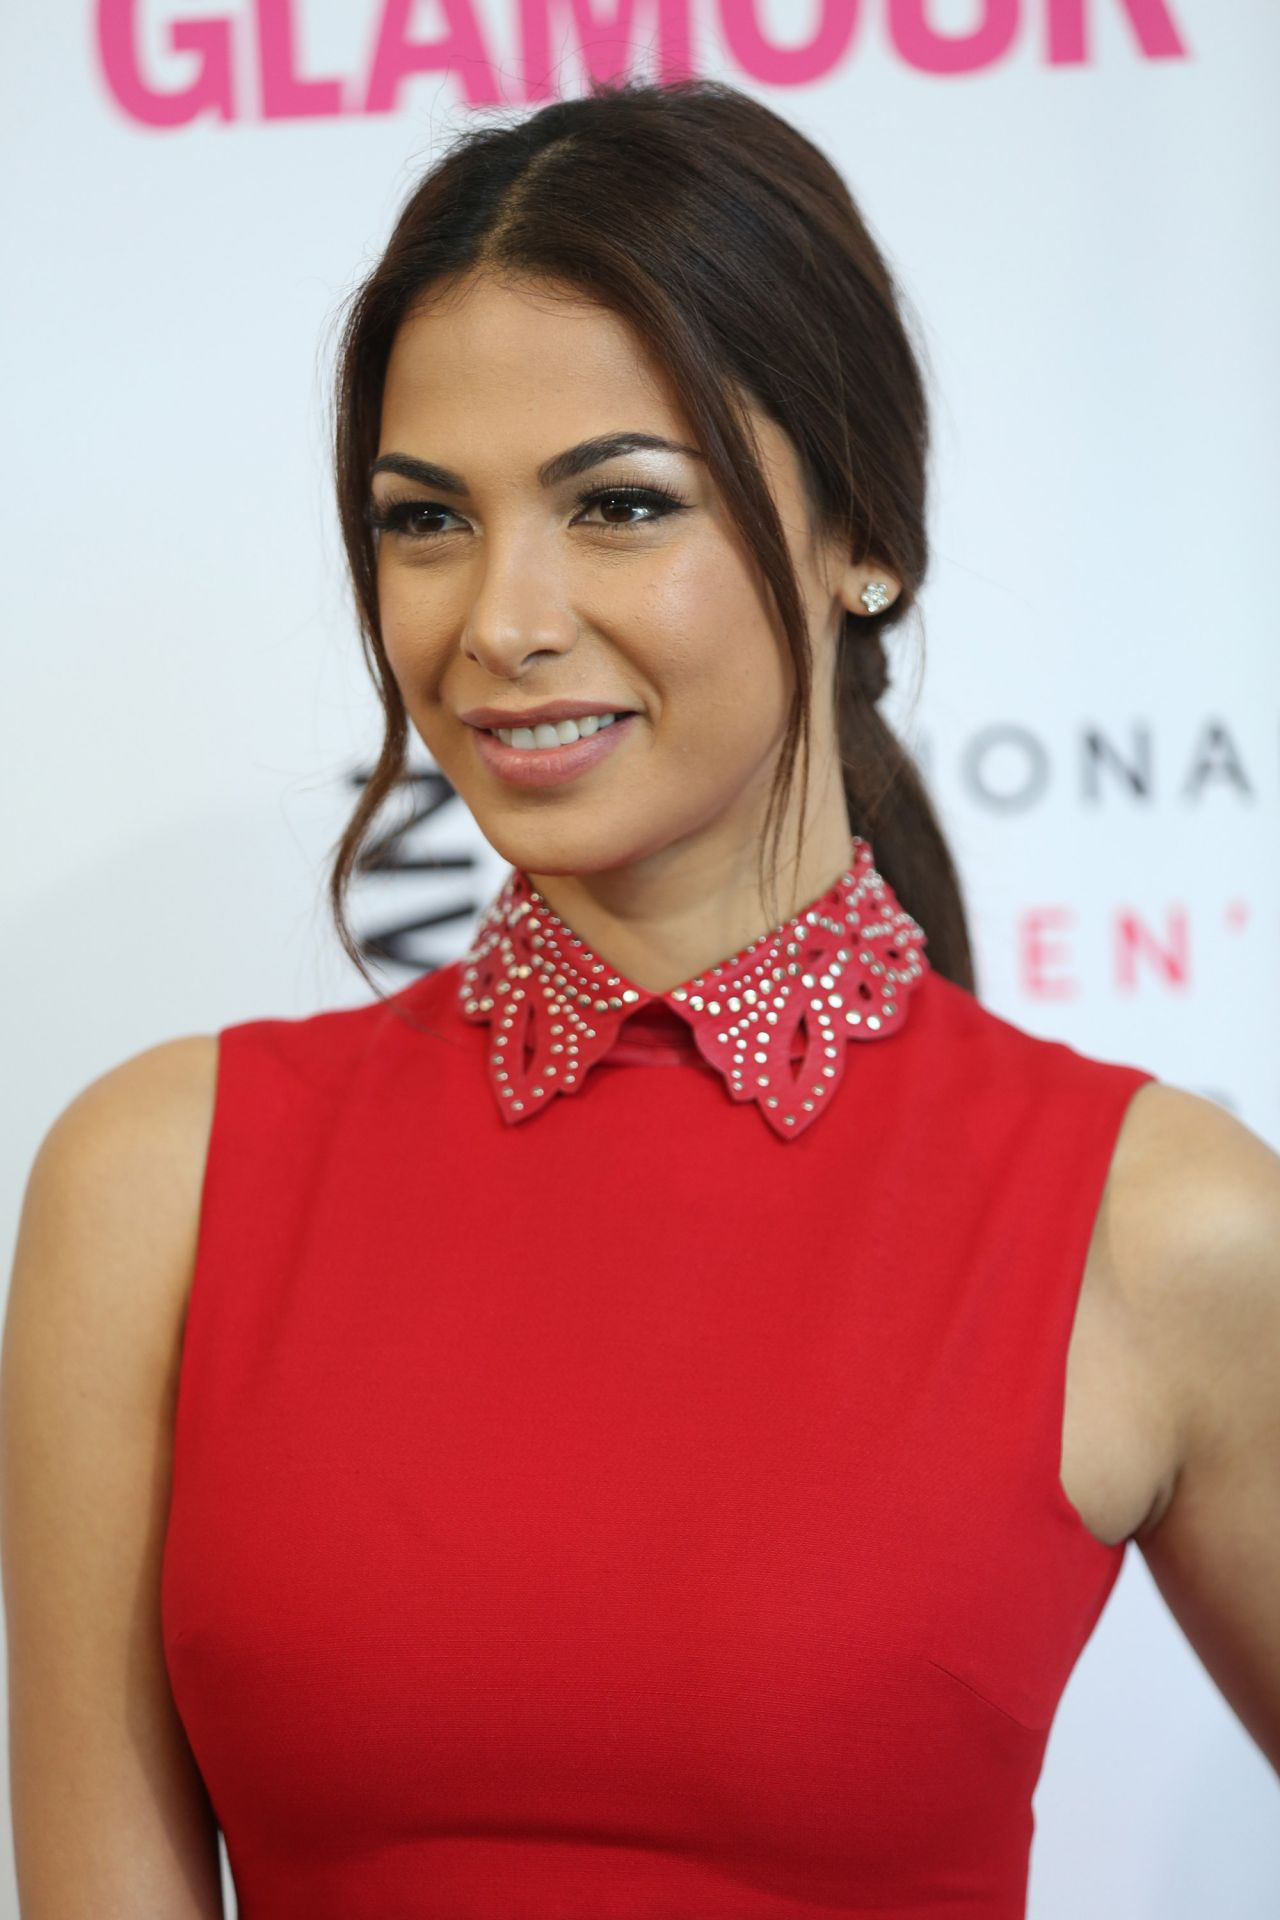 moran atias married